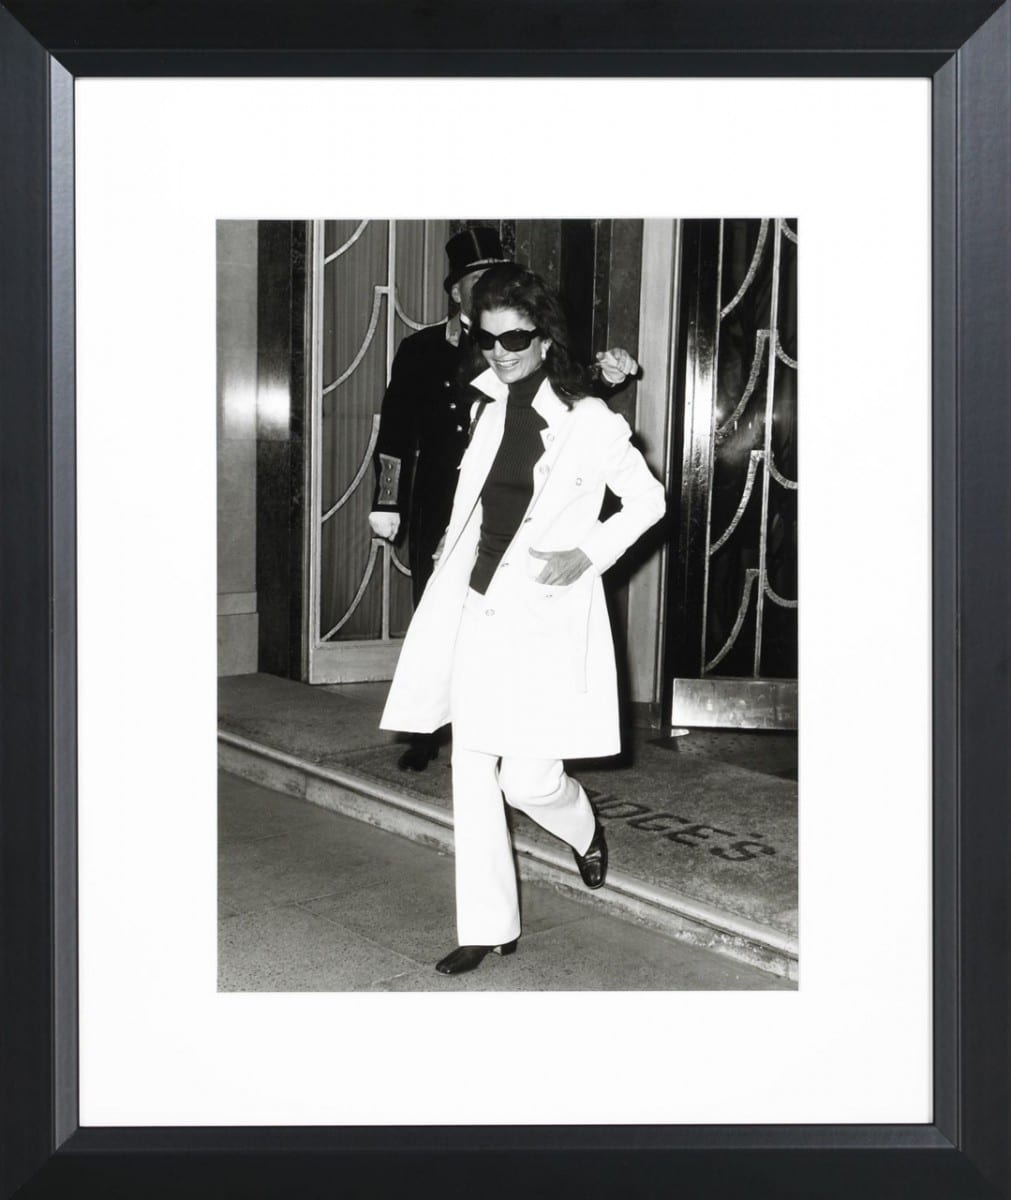 Ted West, Jackie Onassis, gelatin silver print on archival fiber paper, 1970 ©Ralph Lauren Home and Getty Images